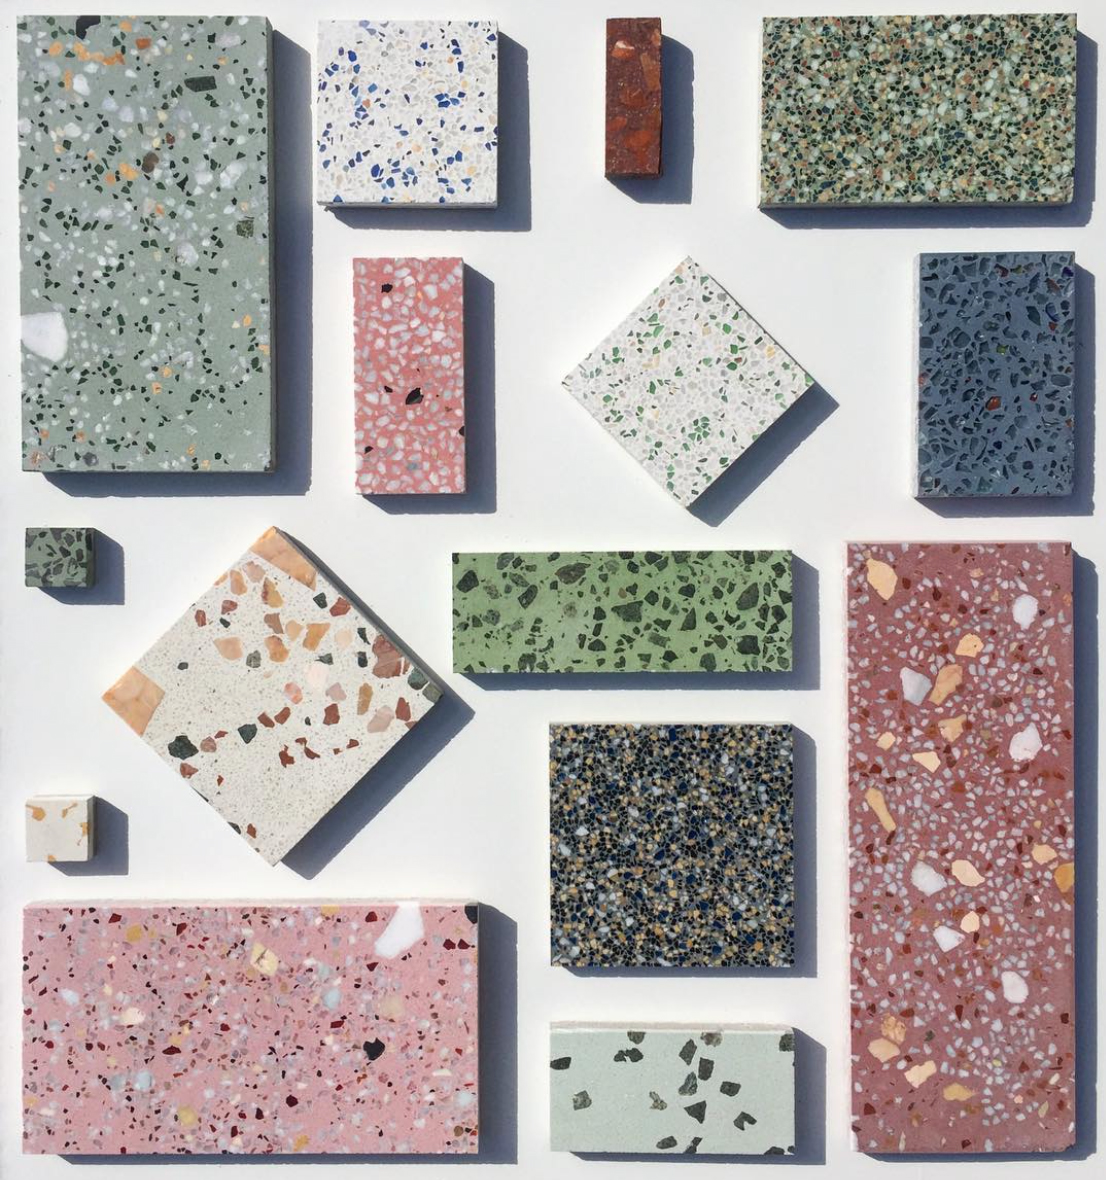 The Ultimate Guide to Terrazzo Flooring – Meaning, Types and General Installation